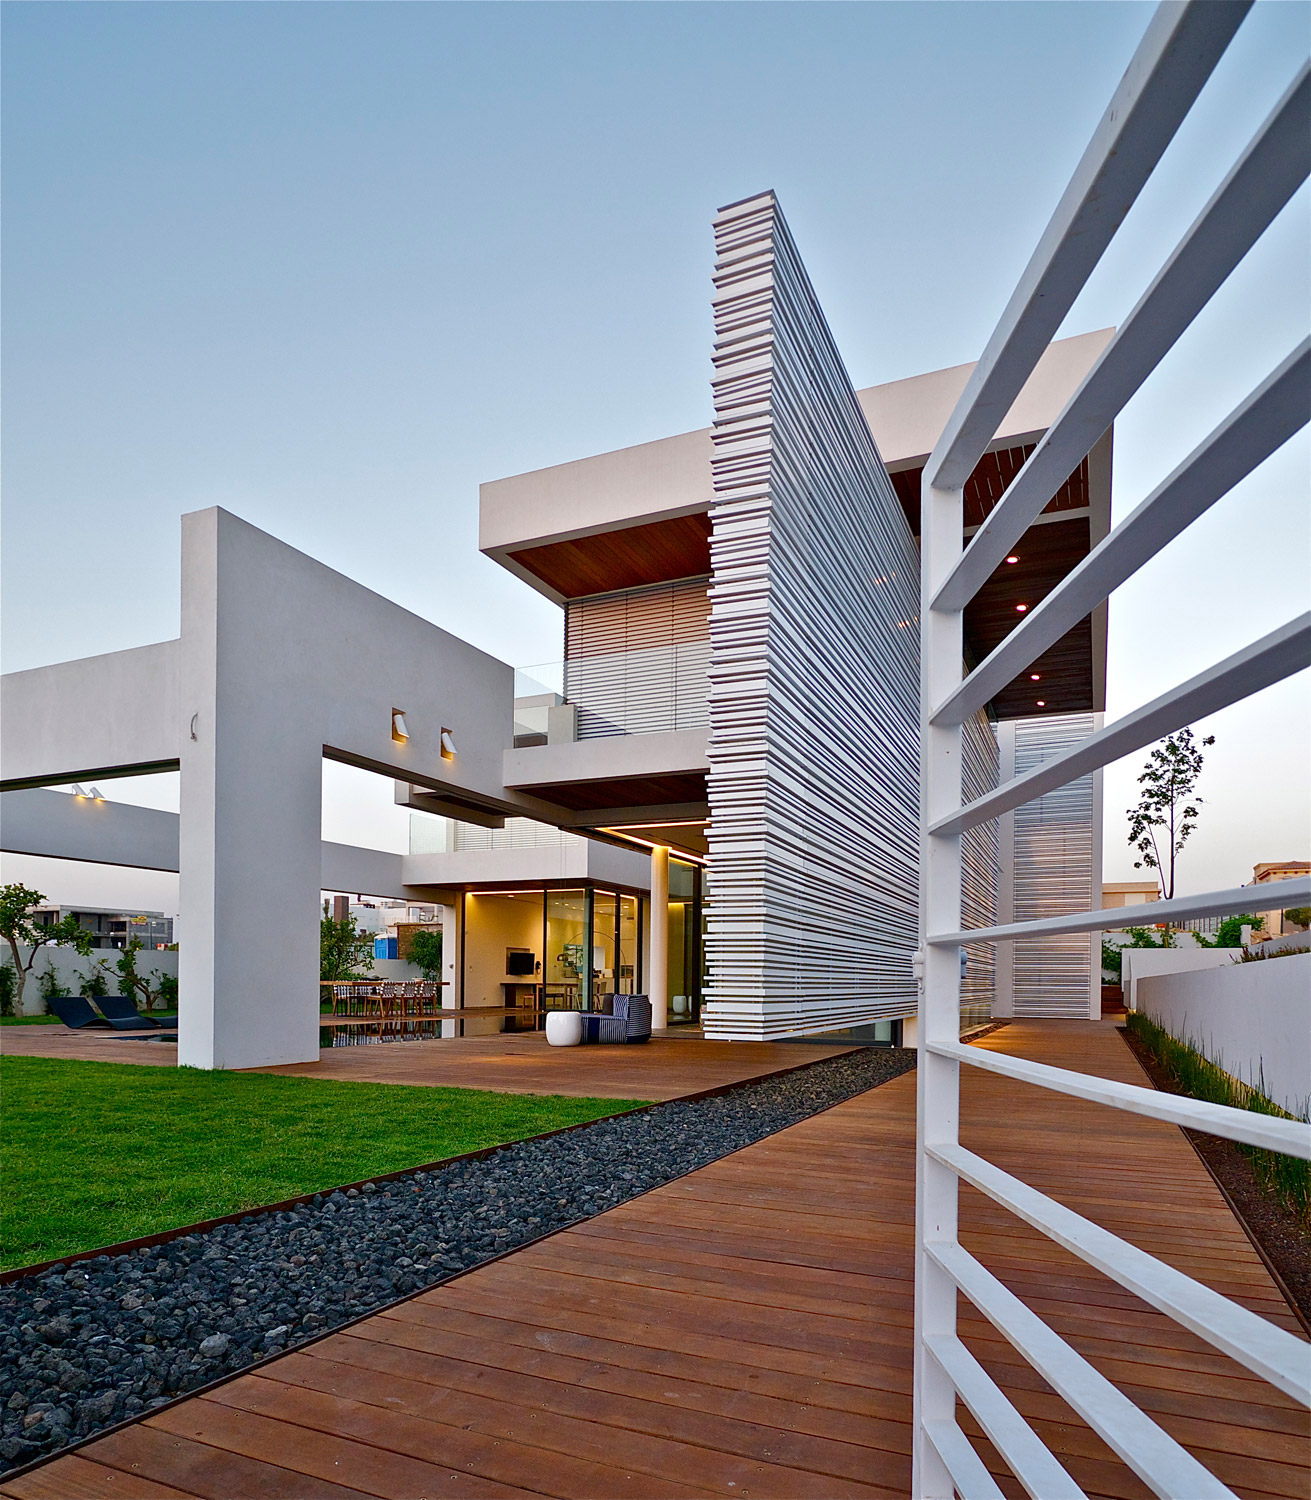 Modern luxury villas designed by gal marom architects for Luxury home designers architects